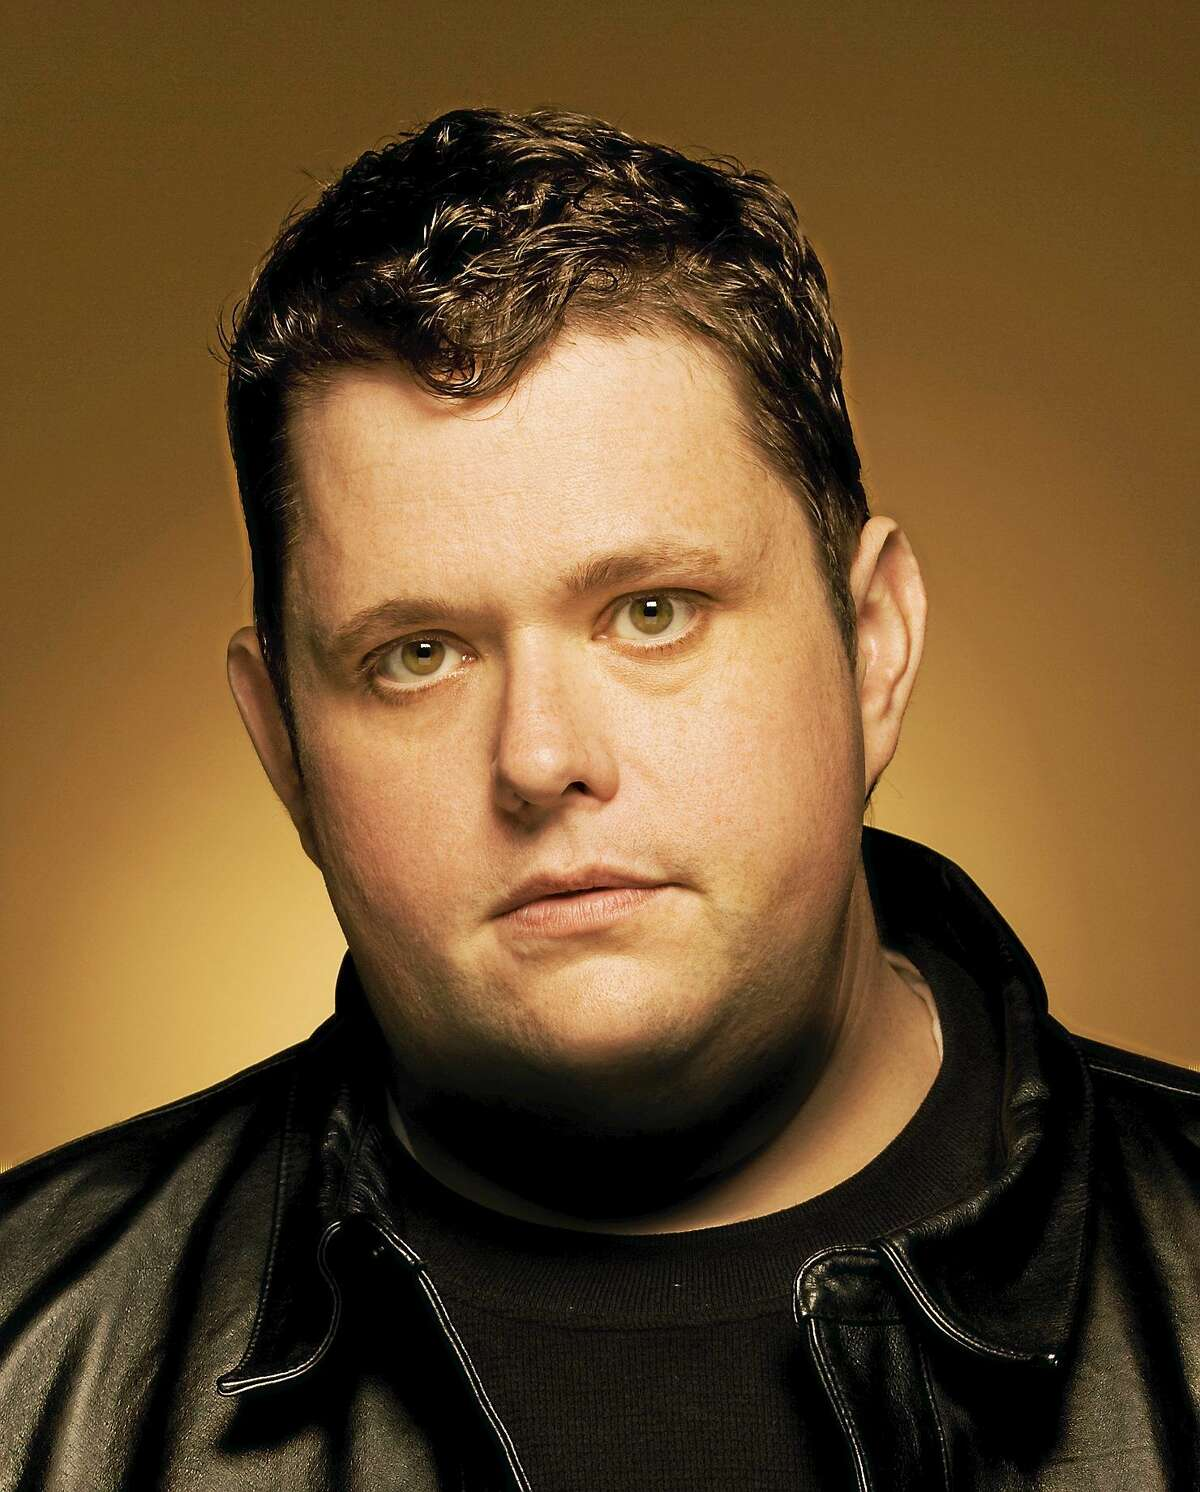 Contributed photo Comedian Ralphie May will bring his comedy show to the Infinity Music Hall & Bistro in Hartford on Sunday, April 26. For tickets or more information on this upcoming comedy show, call the Infinity Hall box office in Hartford at 866-666-6306 or visit www.infinityhall.com